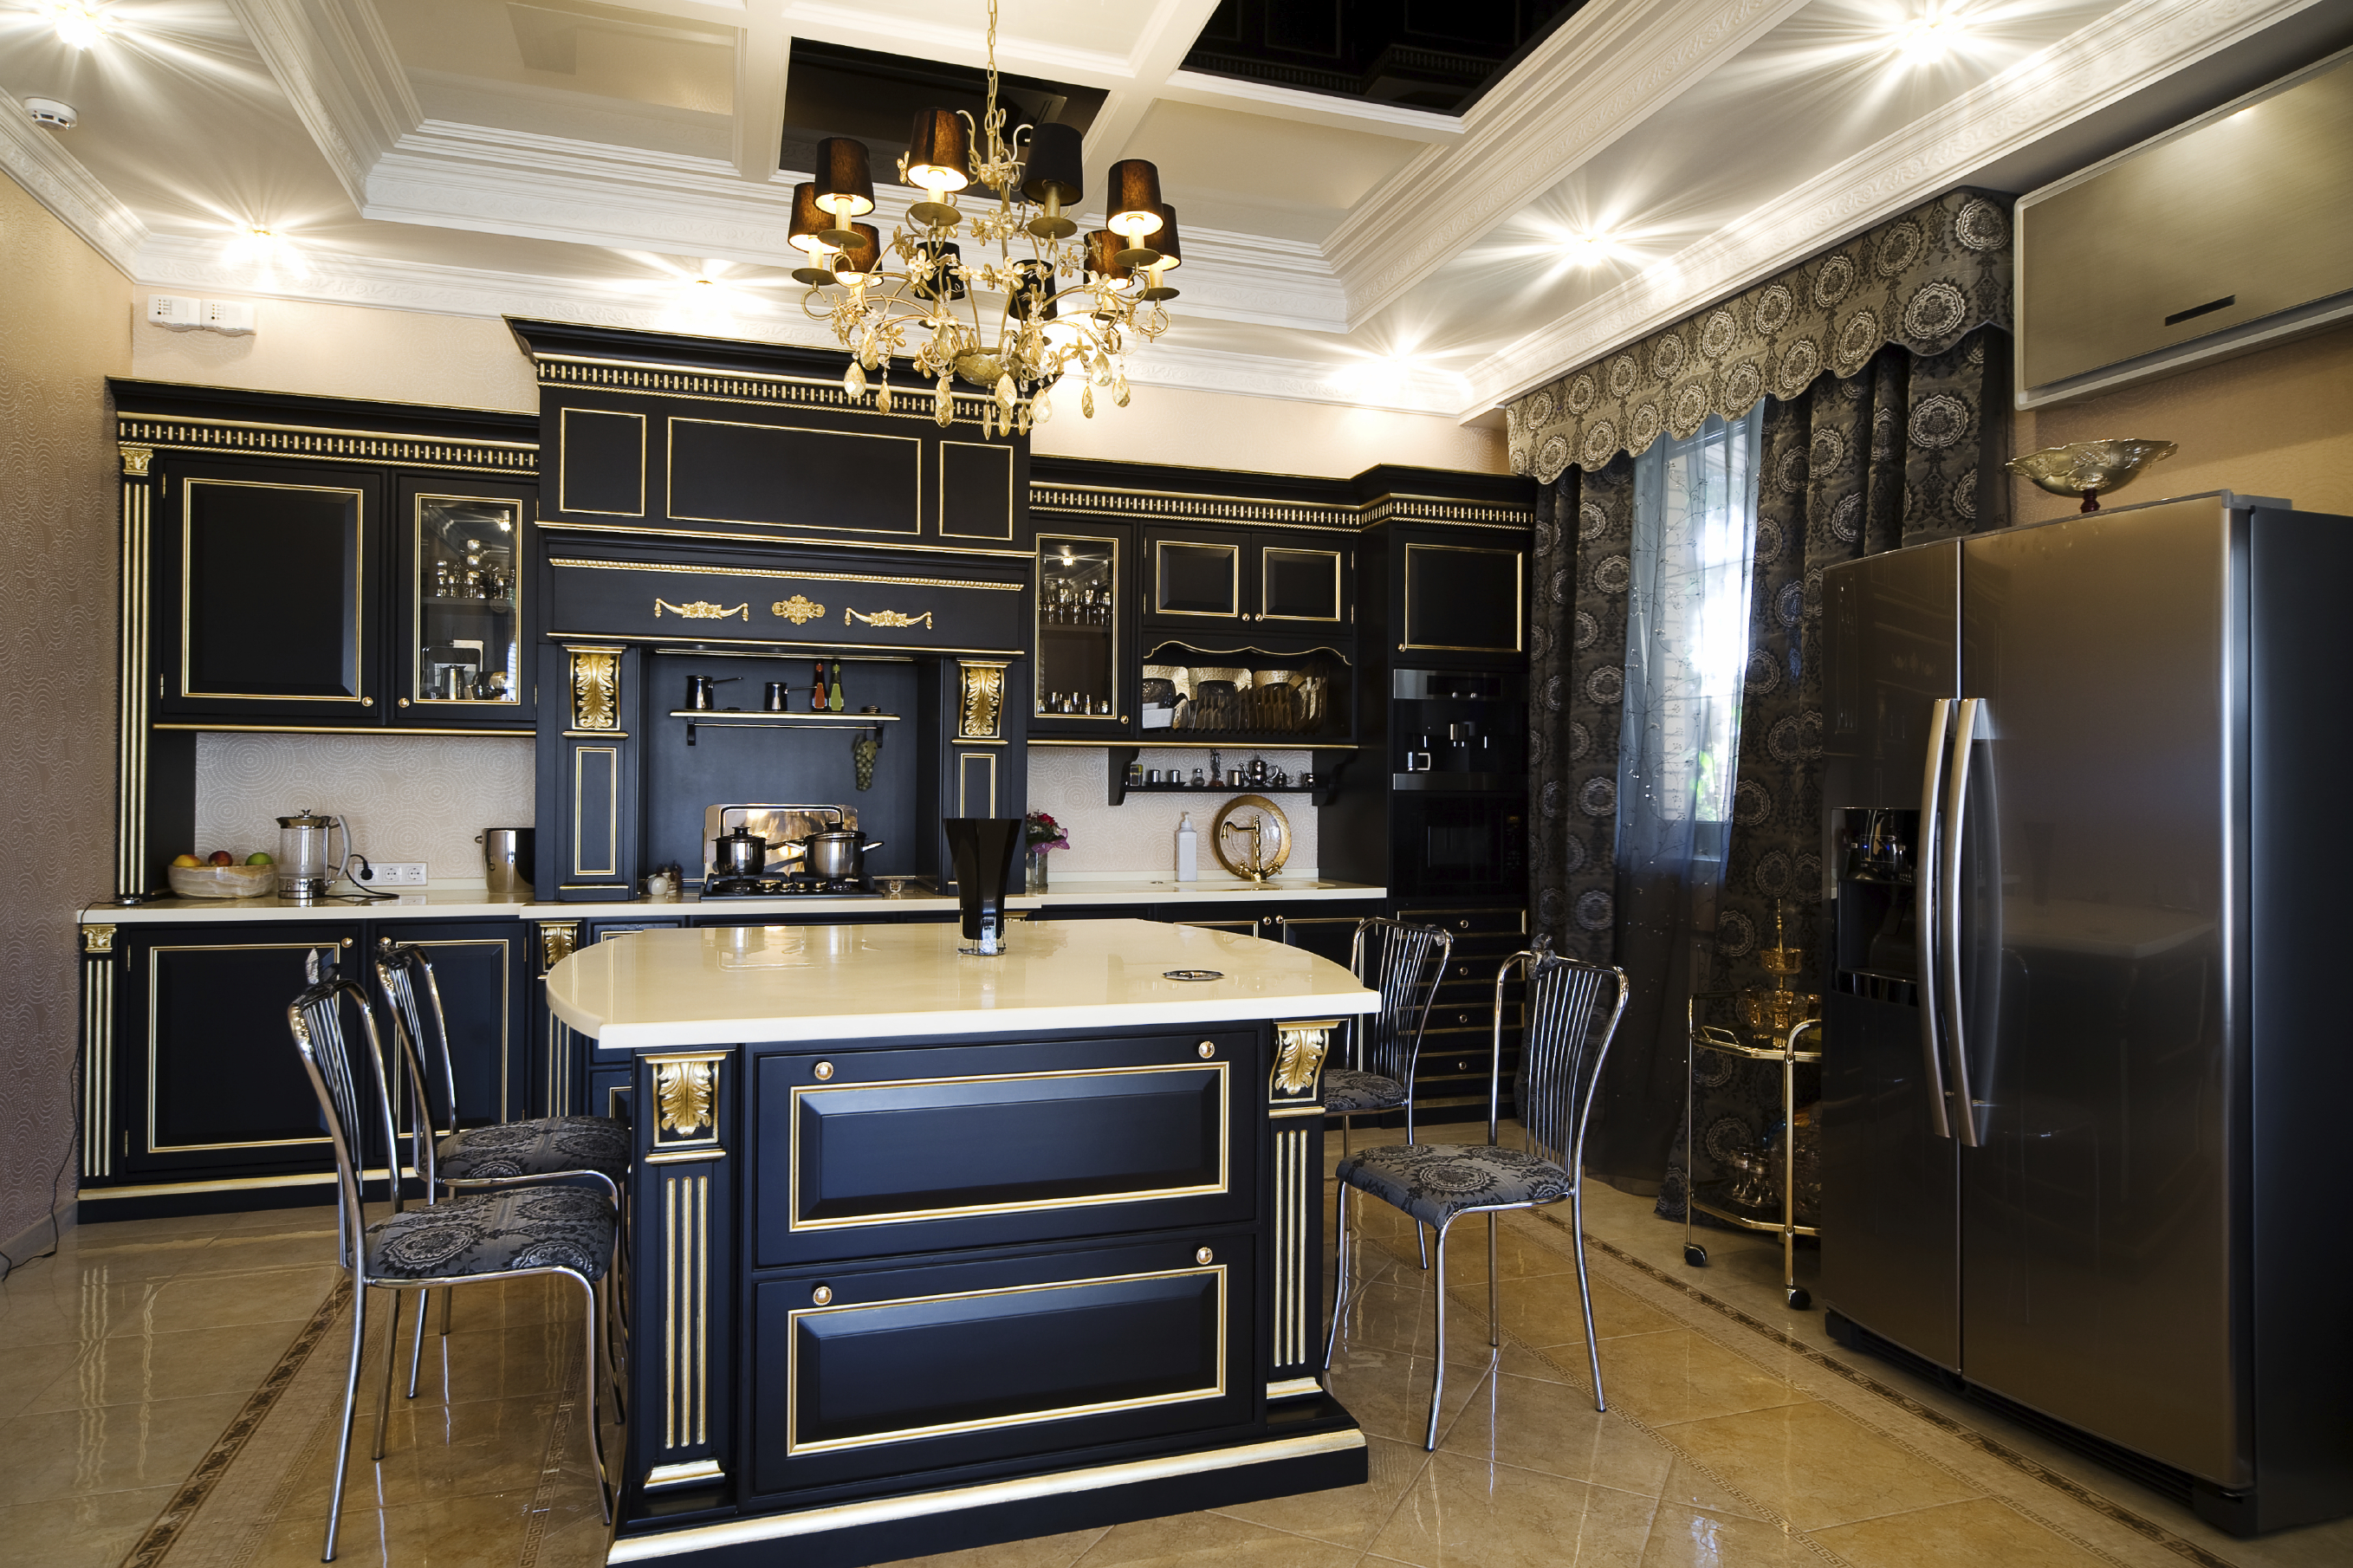 pictures of white kitchen cabinets with black appliances will black kitchen cabinets soon replace white cabinets 9883